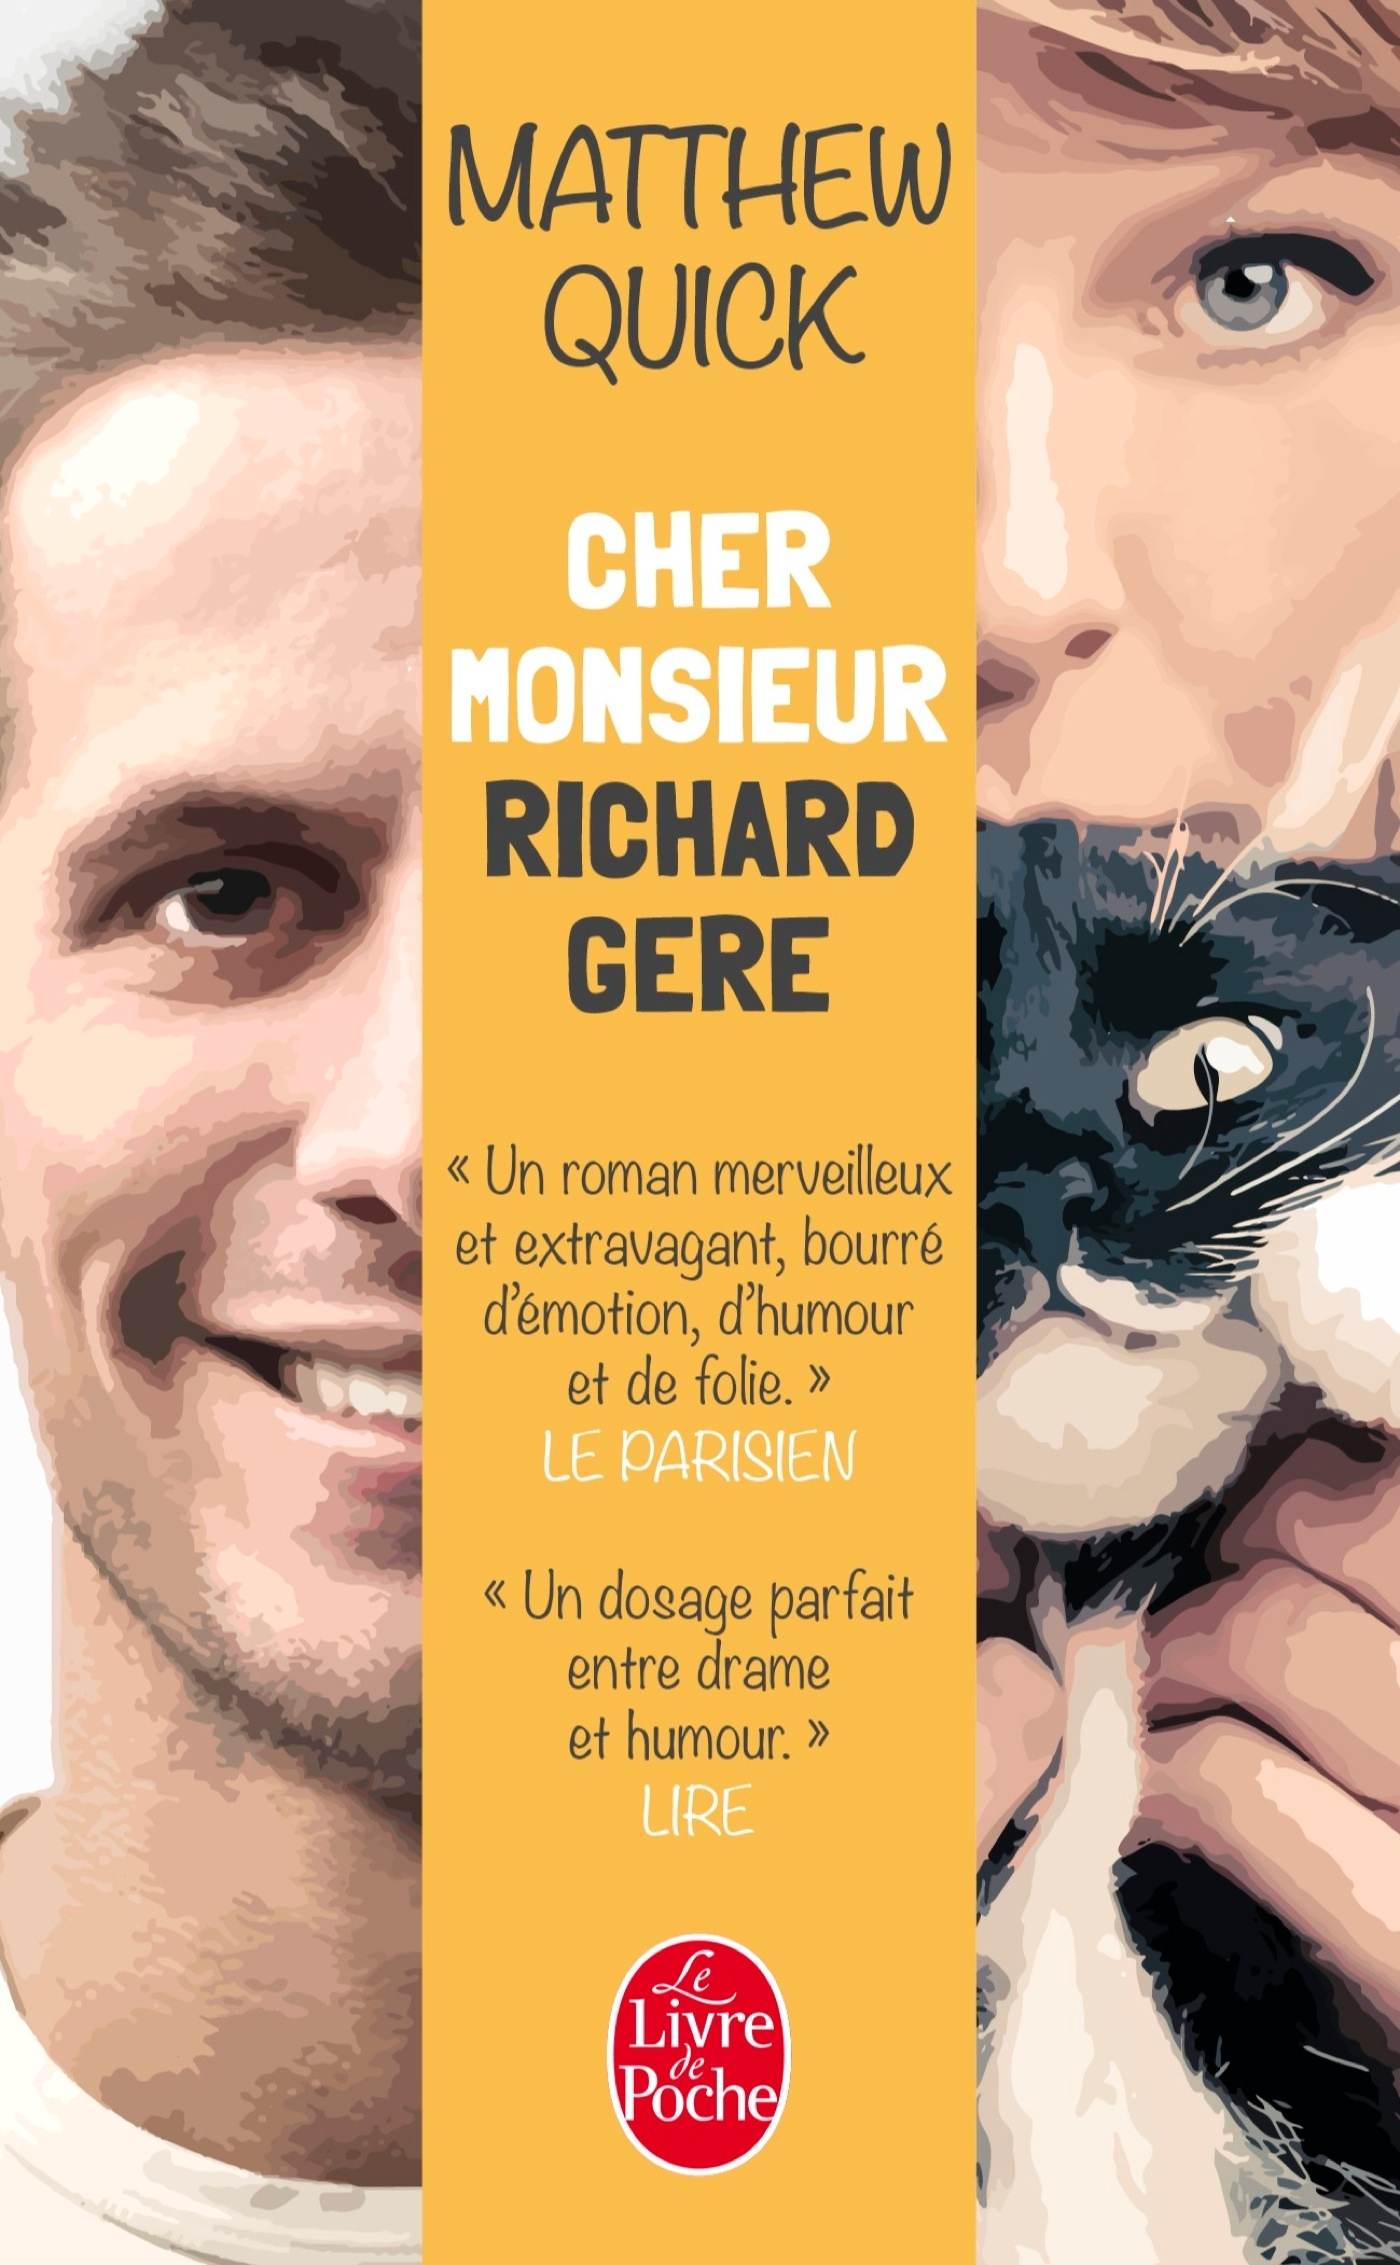 Cher Monsieur Richard Gere